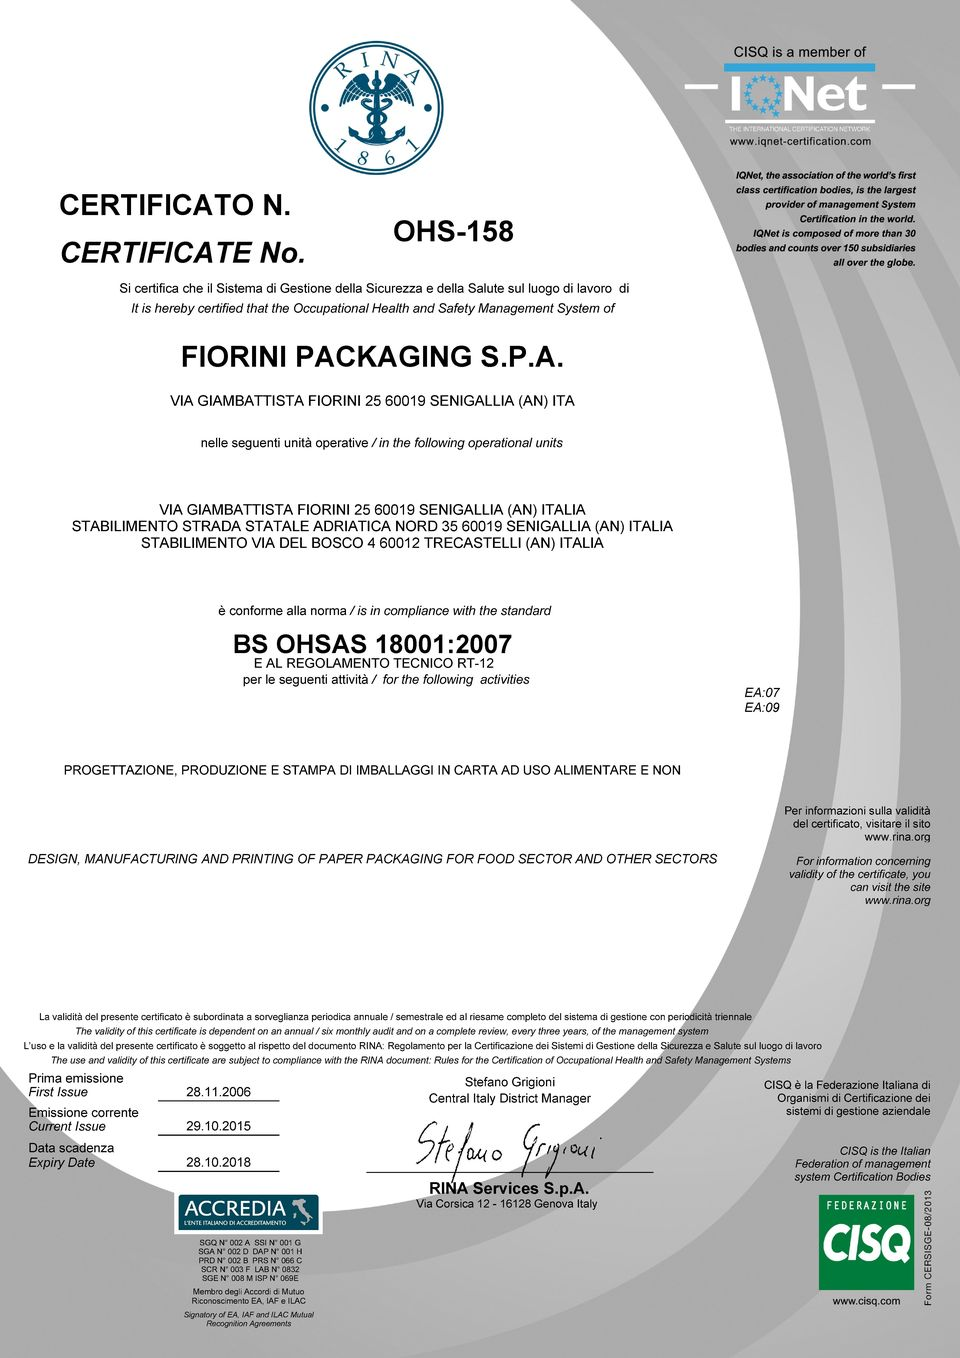 seguenti unità operative / in the following operational units LIA è conforme alla norma / is in compliance with the standard BS OHSAS 18001:2007 E AL REGOLAMENTO TECNICO RT-12 per le seguenti